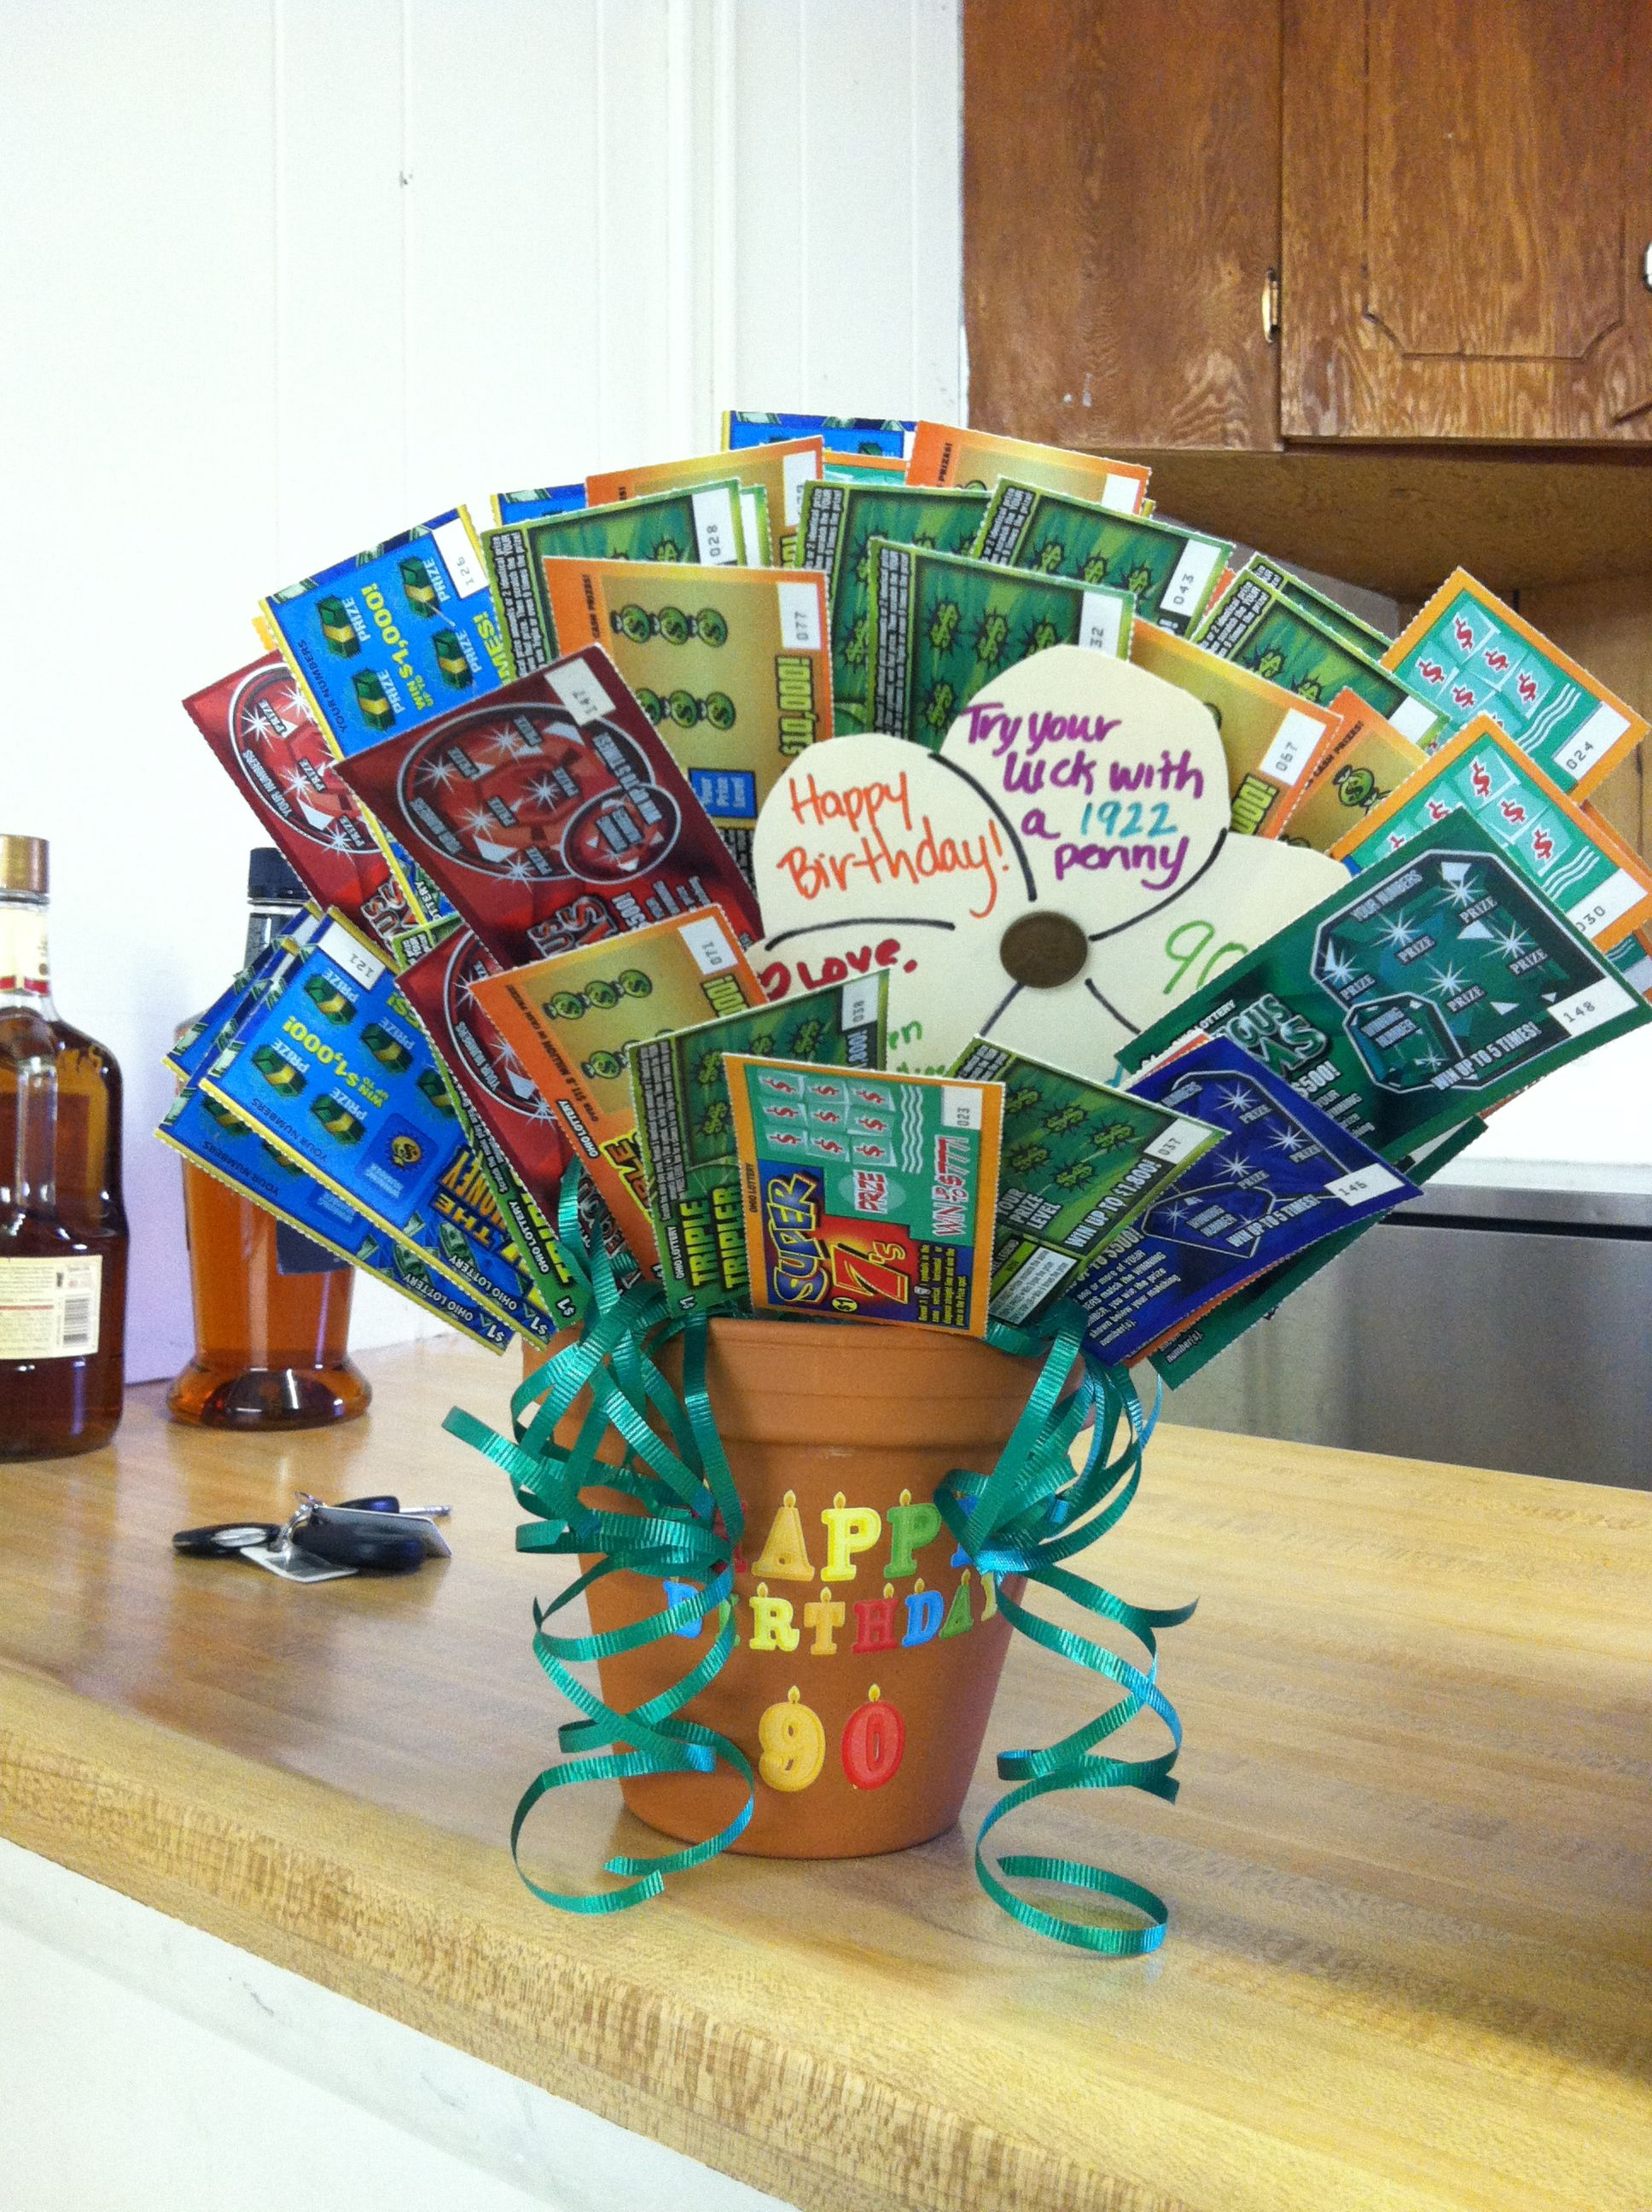 lottery ticket gift basket for grandpa's 90th birthday | products i